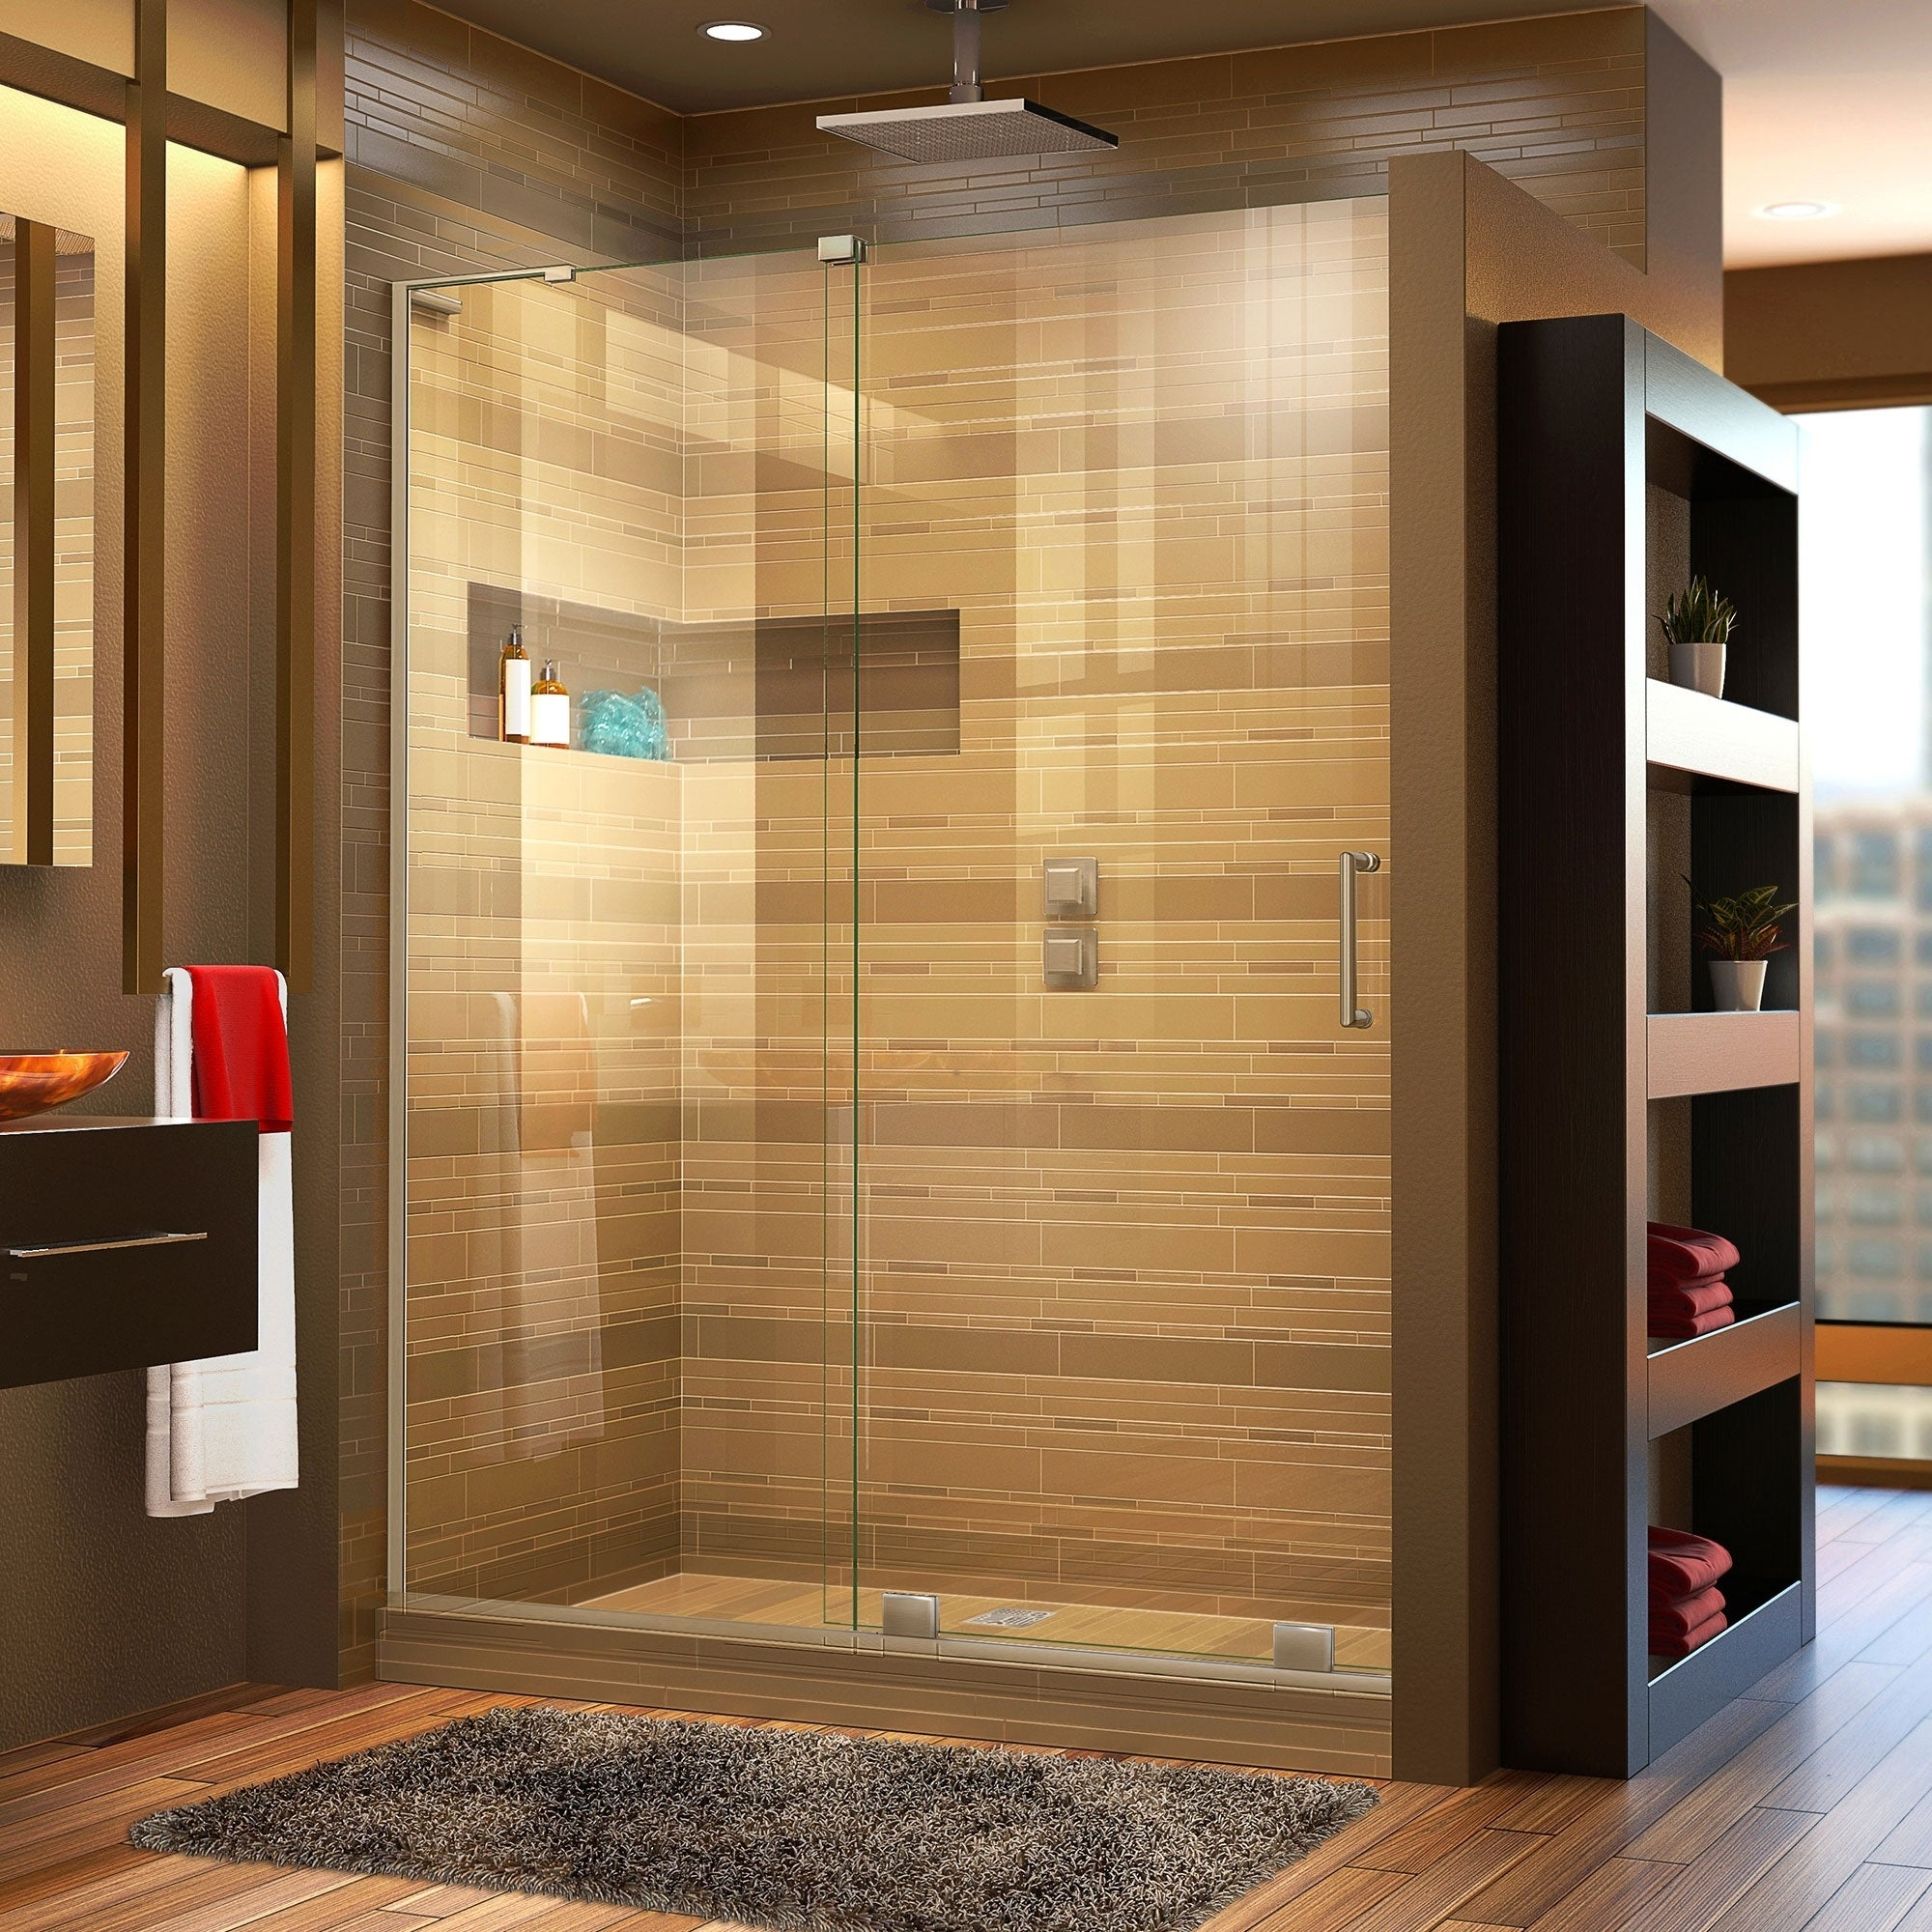 Dreamline Mirage X 56 60 In W X 72 In H Frameless Sliding Shower Door